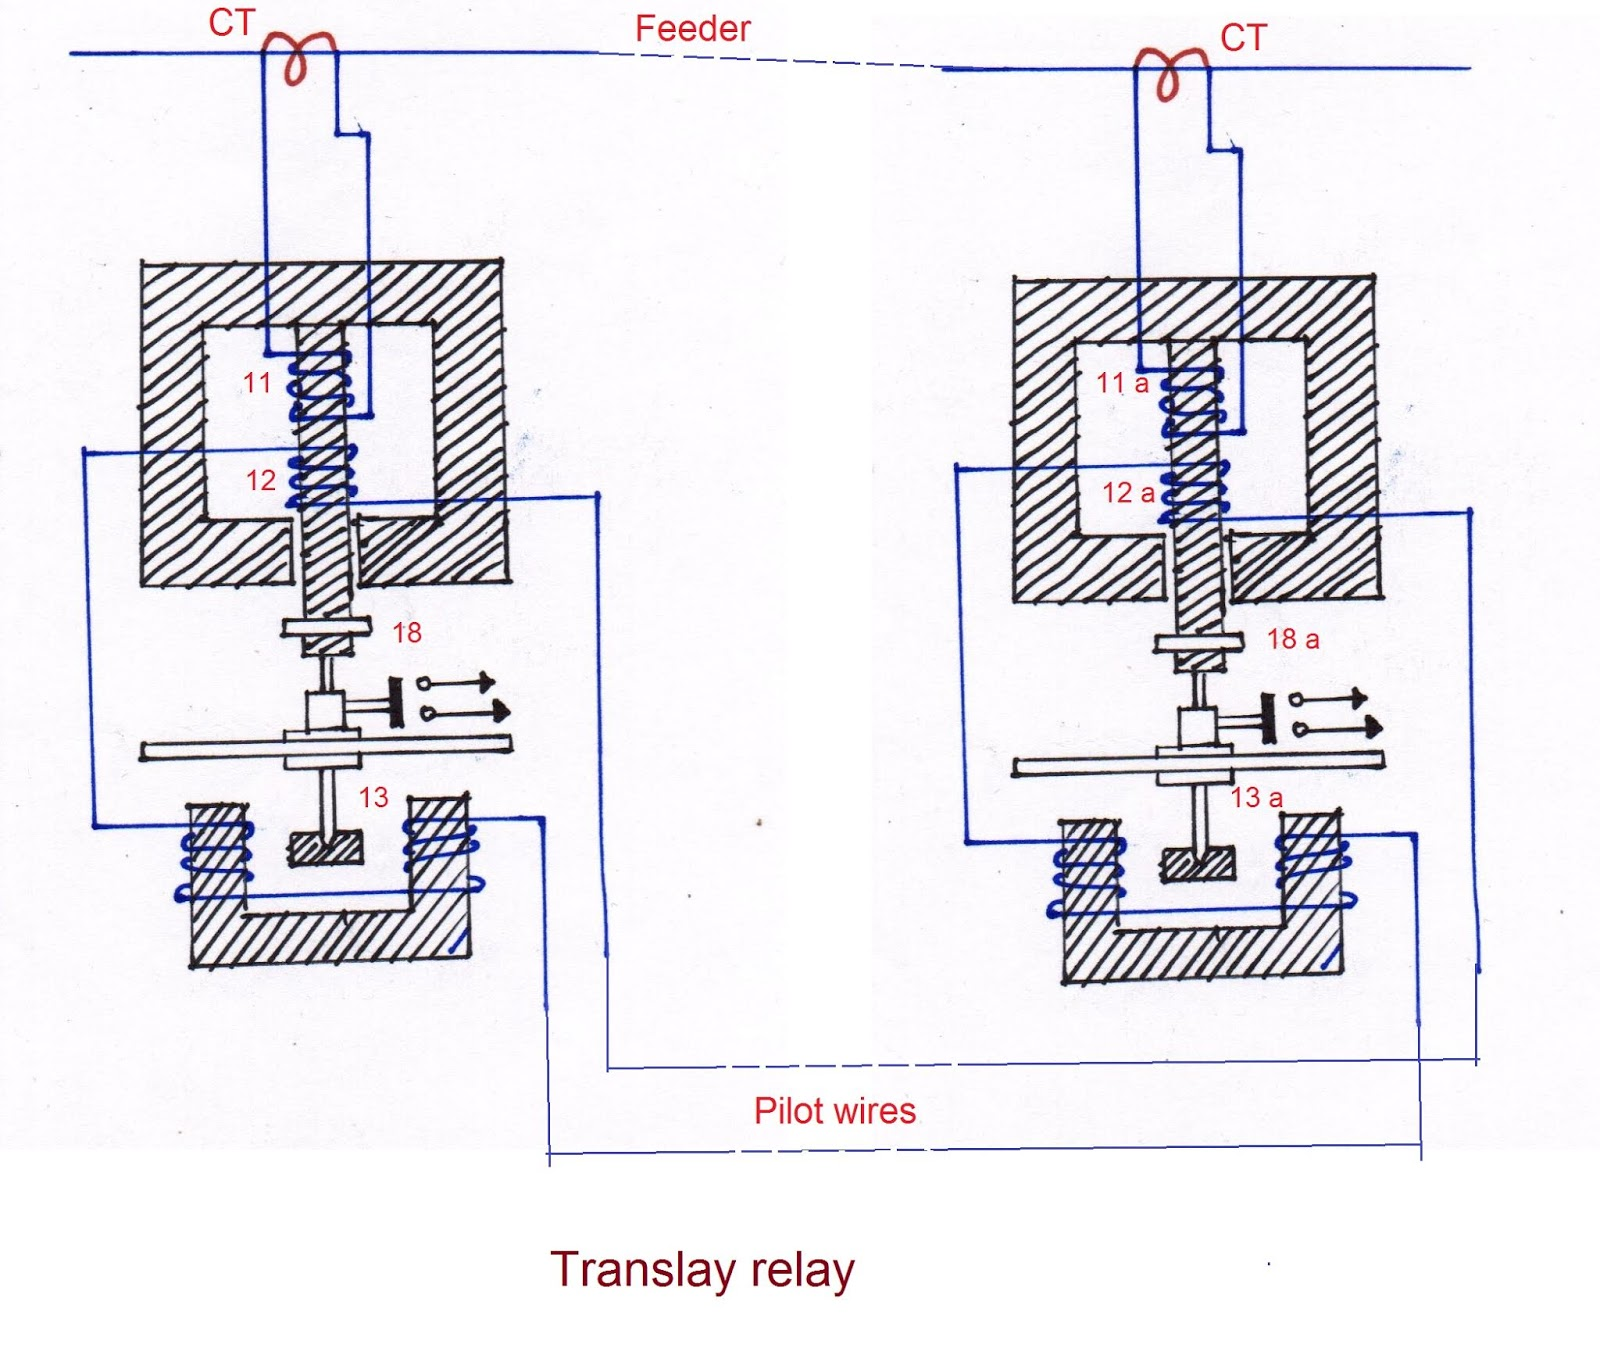 Translay Relay Protection Construction Operation And Advantages Circuit Working Scheme